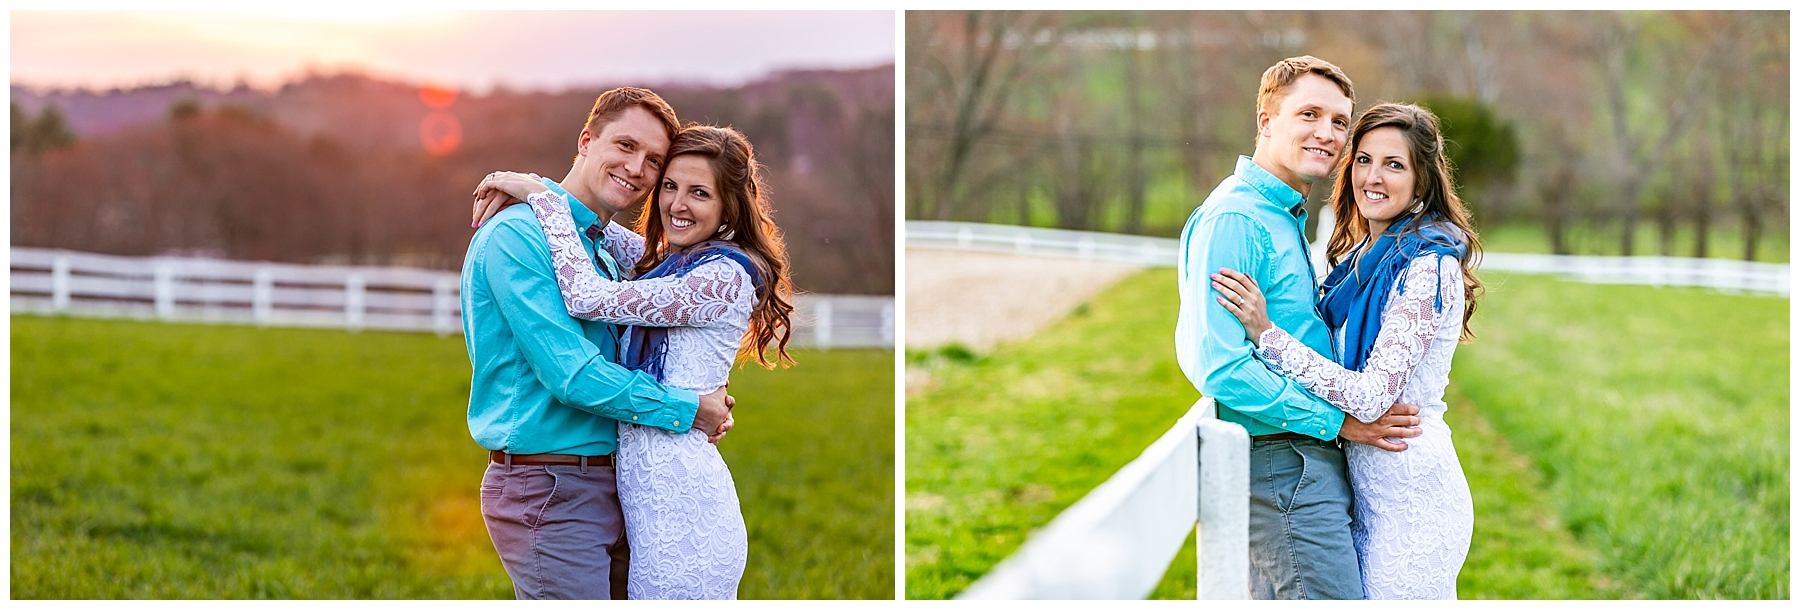 Chelsea Phil Private Estate Engagement Living Radiant Photography photos color_0047.jpg